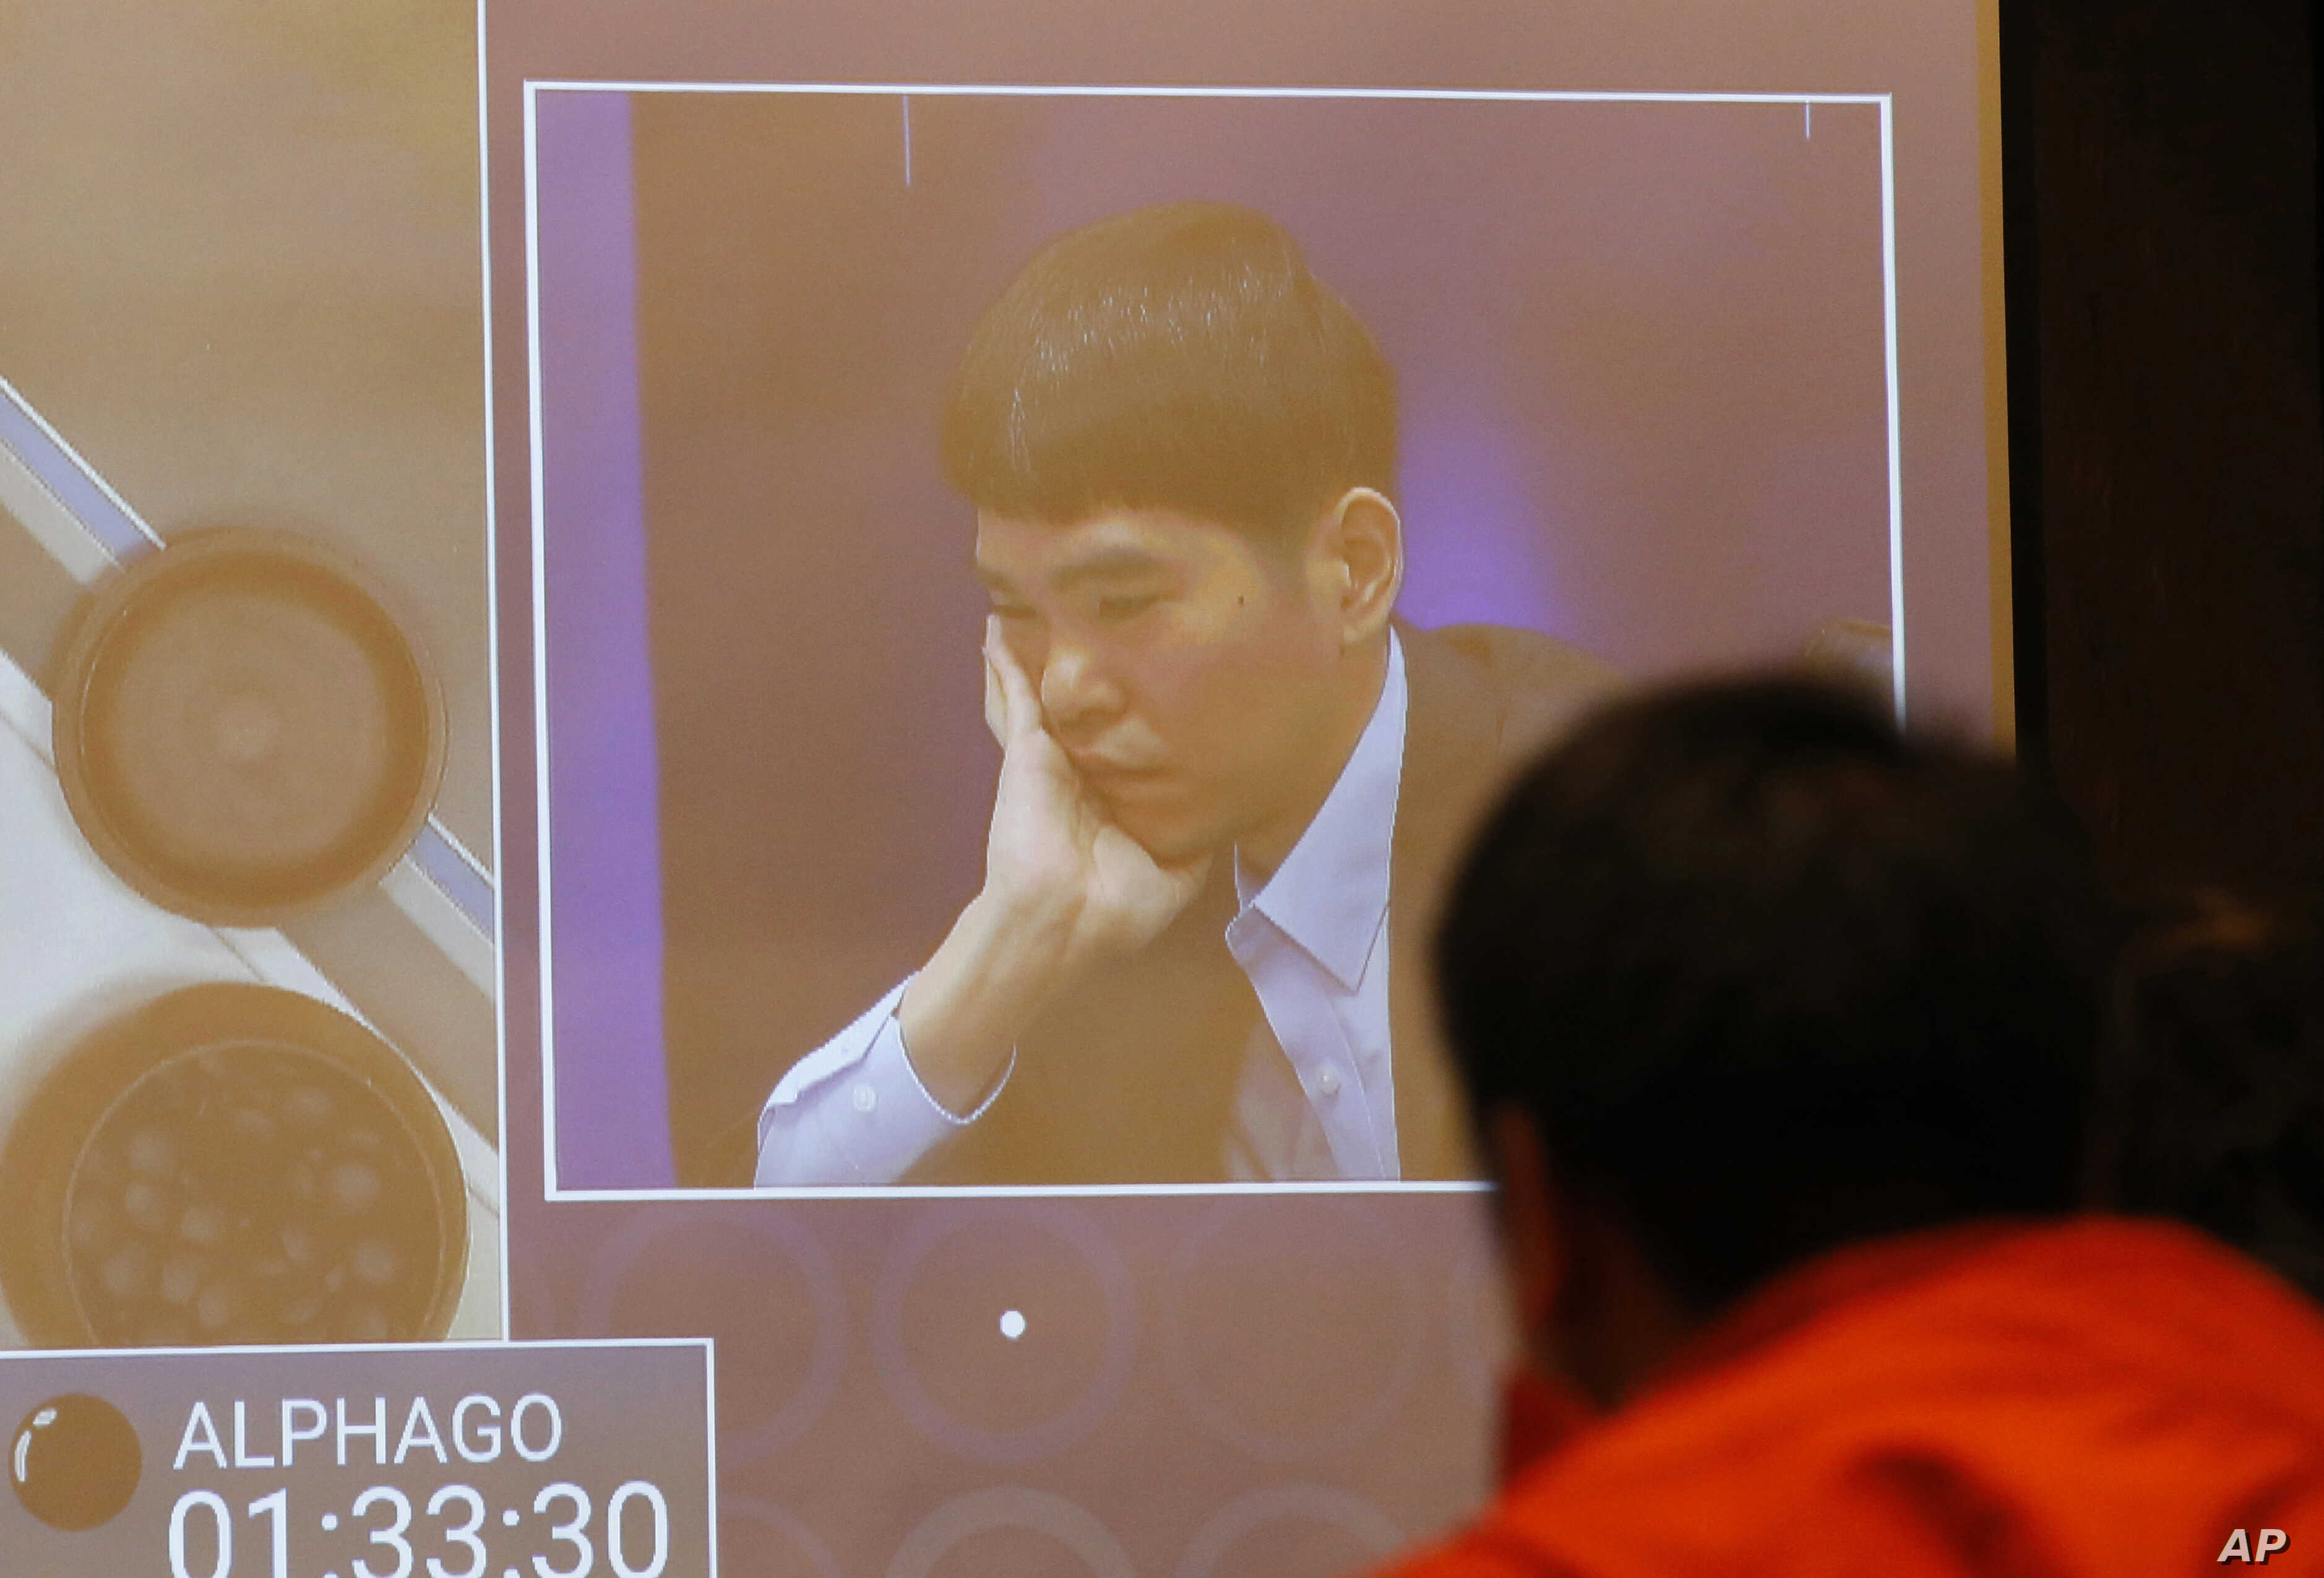 South Korean professional Go player Lee Sedol appears on the screen during the second match of the Google DeepMind Challenge Match against Google's artificial intelligence program, AlphaGo at the media room in Seoul, South Korea, March 10, 2016.